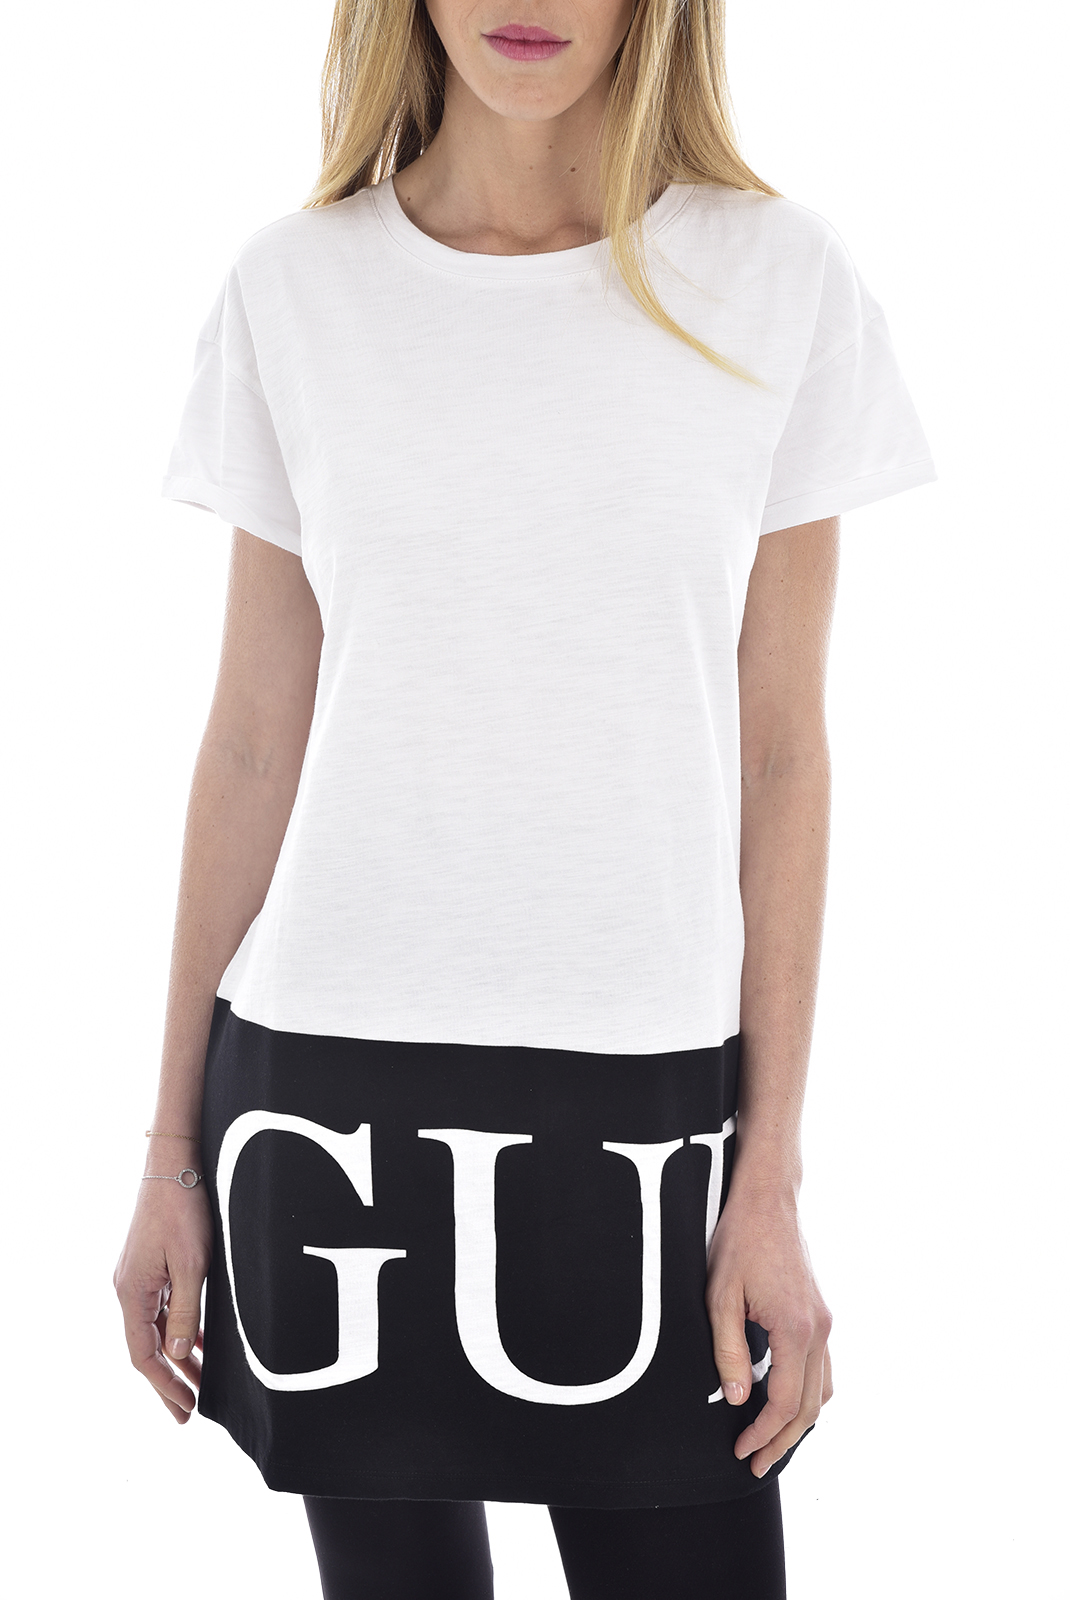 Tee shirt  Guess jeans W63I1GK3541 TWHT Blanc pur